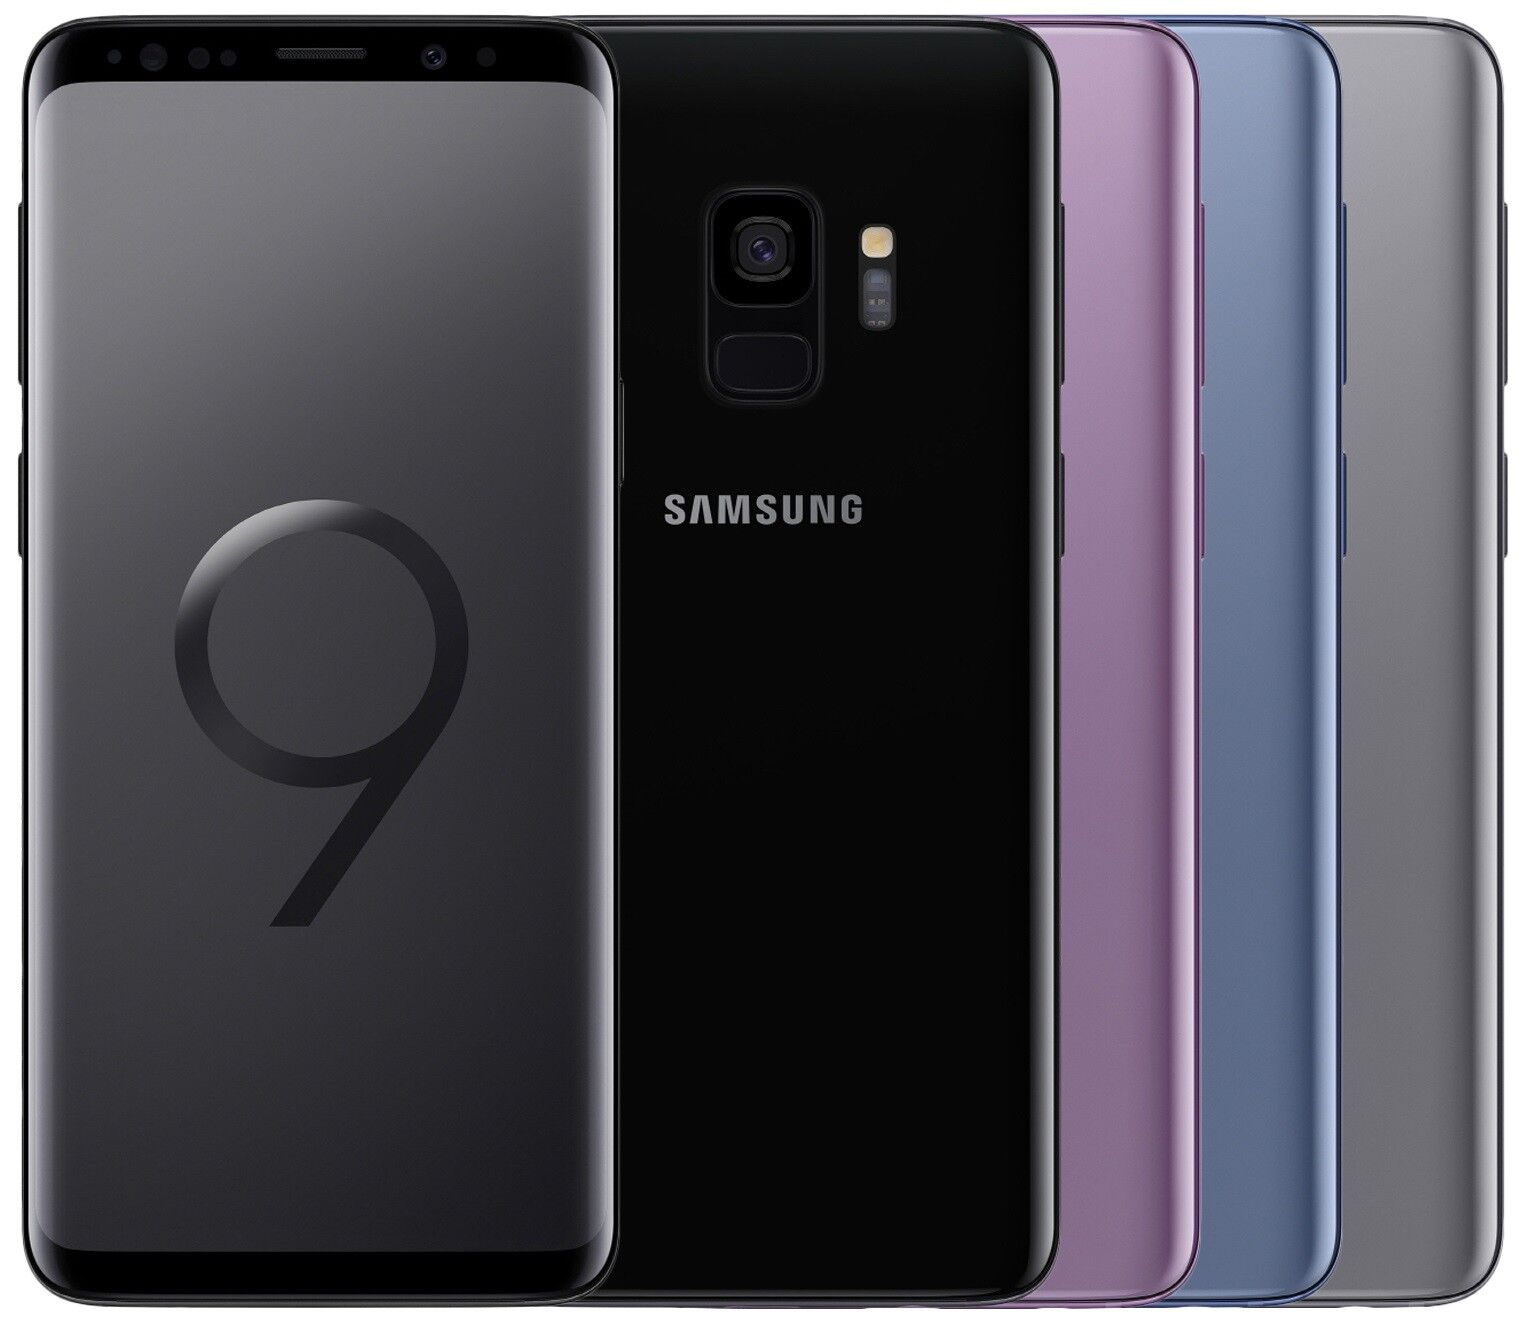 Samsung Galaxy S9 128GB SM-G960F/DS Dual Sim (FACTORY UNLOCKED) 5.8 QHD 4GB RAM